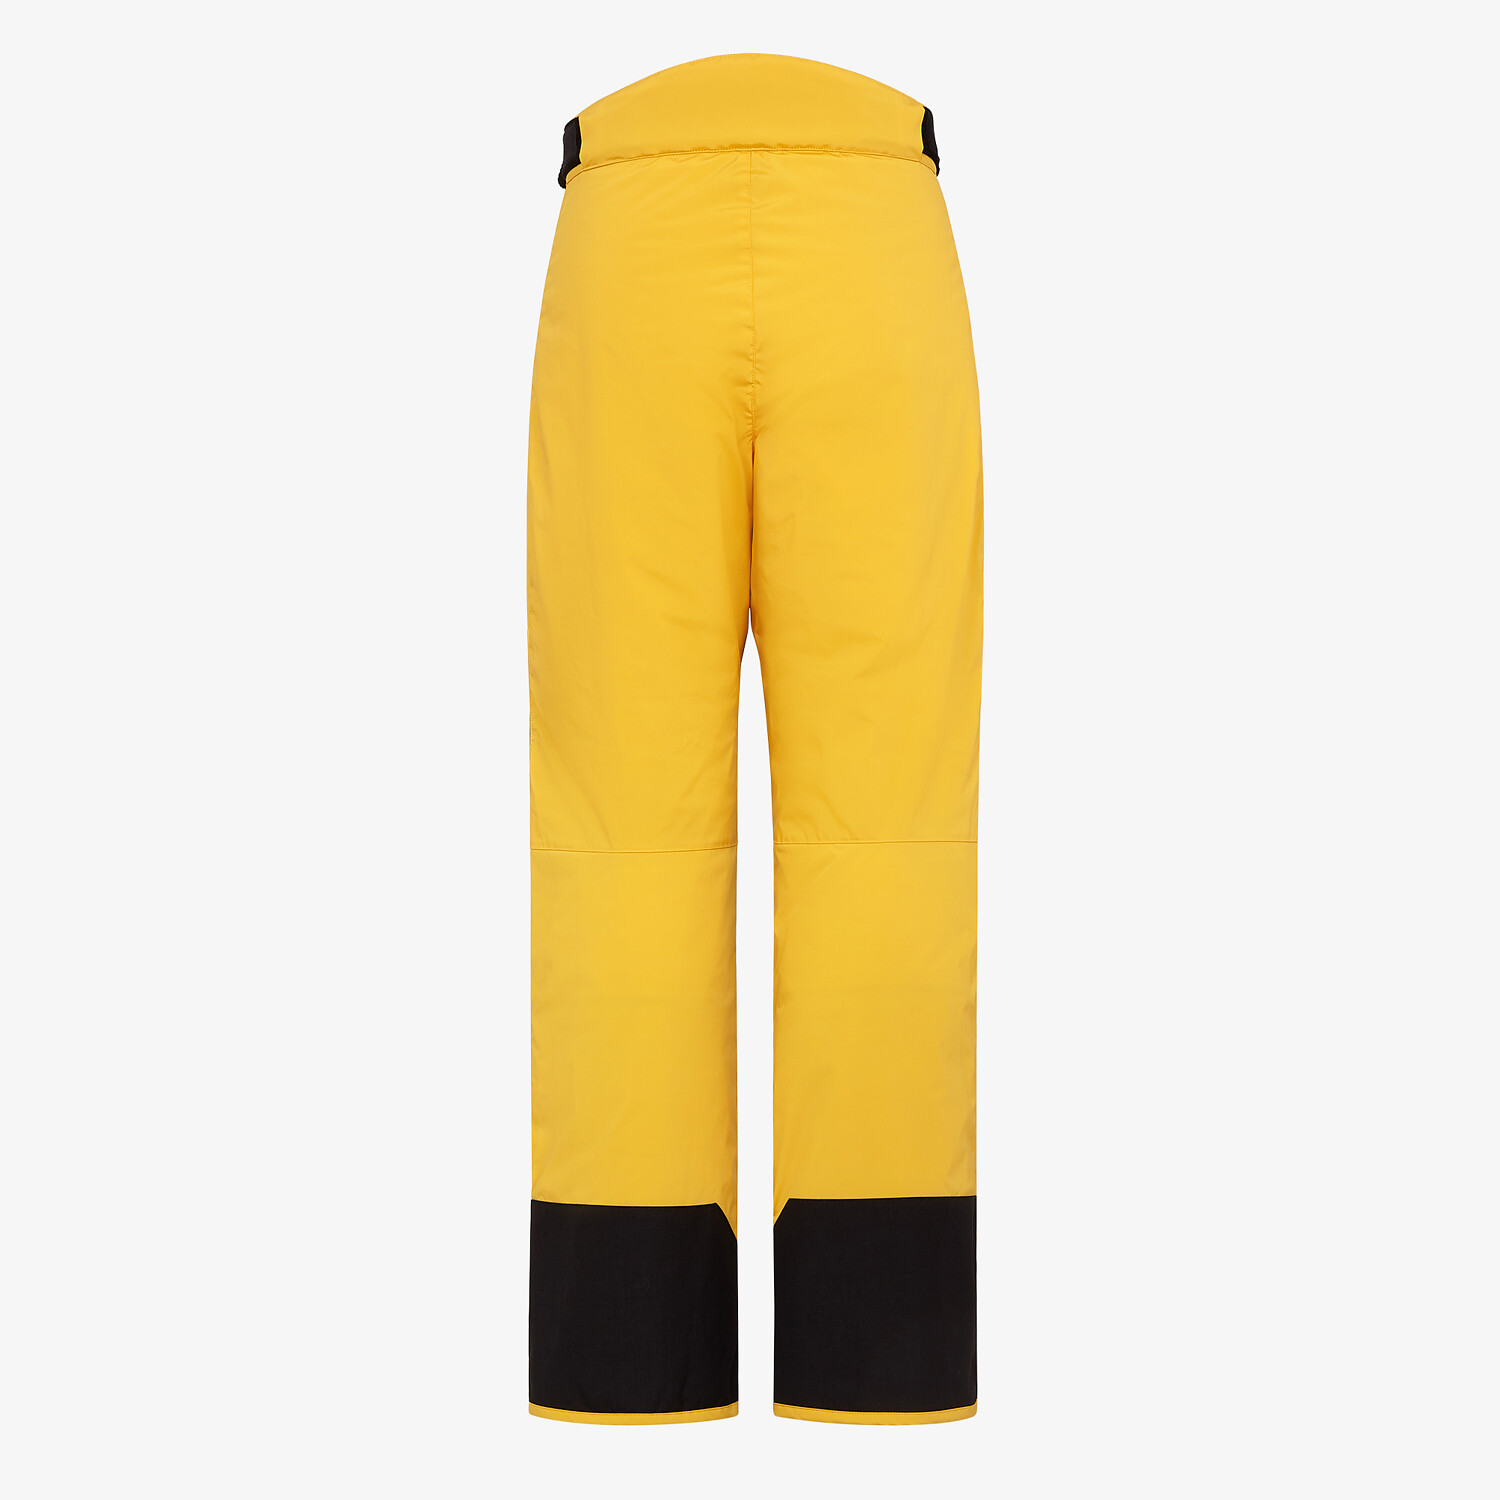 FENDI PANTS - Yellow tech fabric jogging pants - view 2 detail